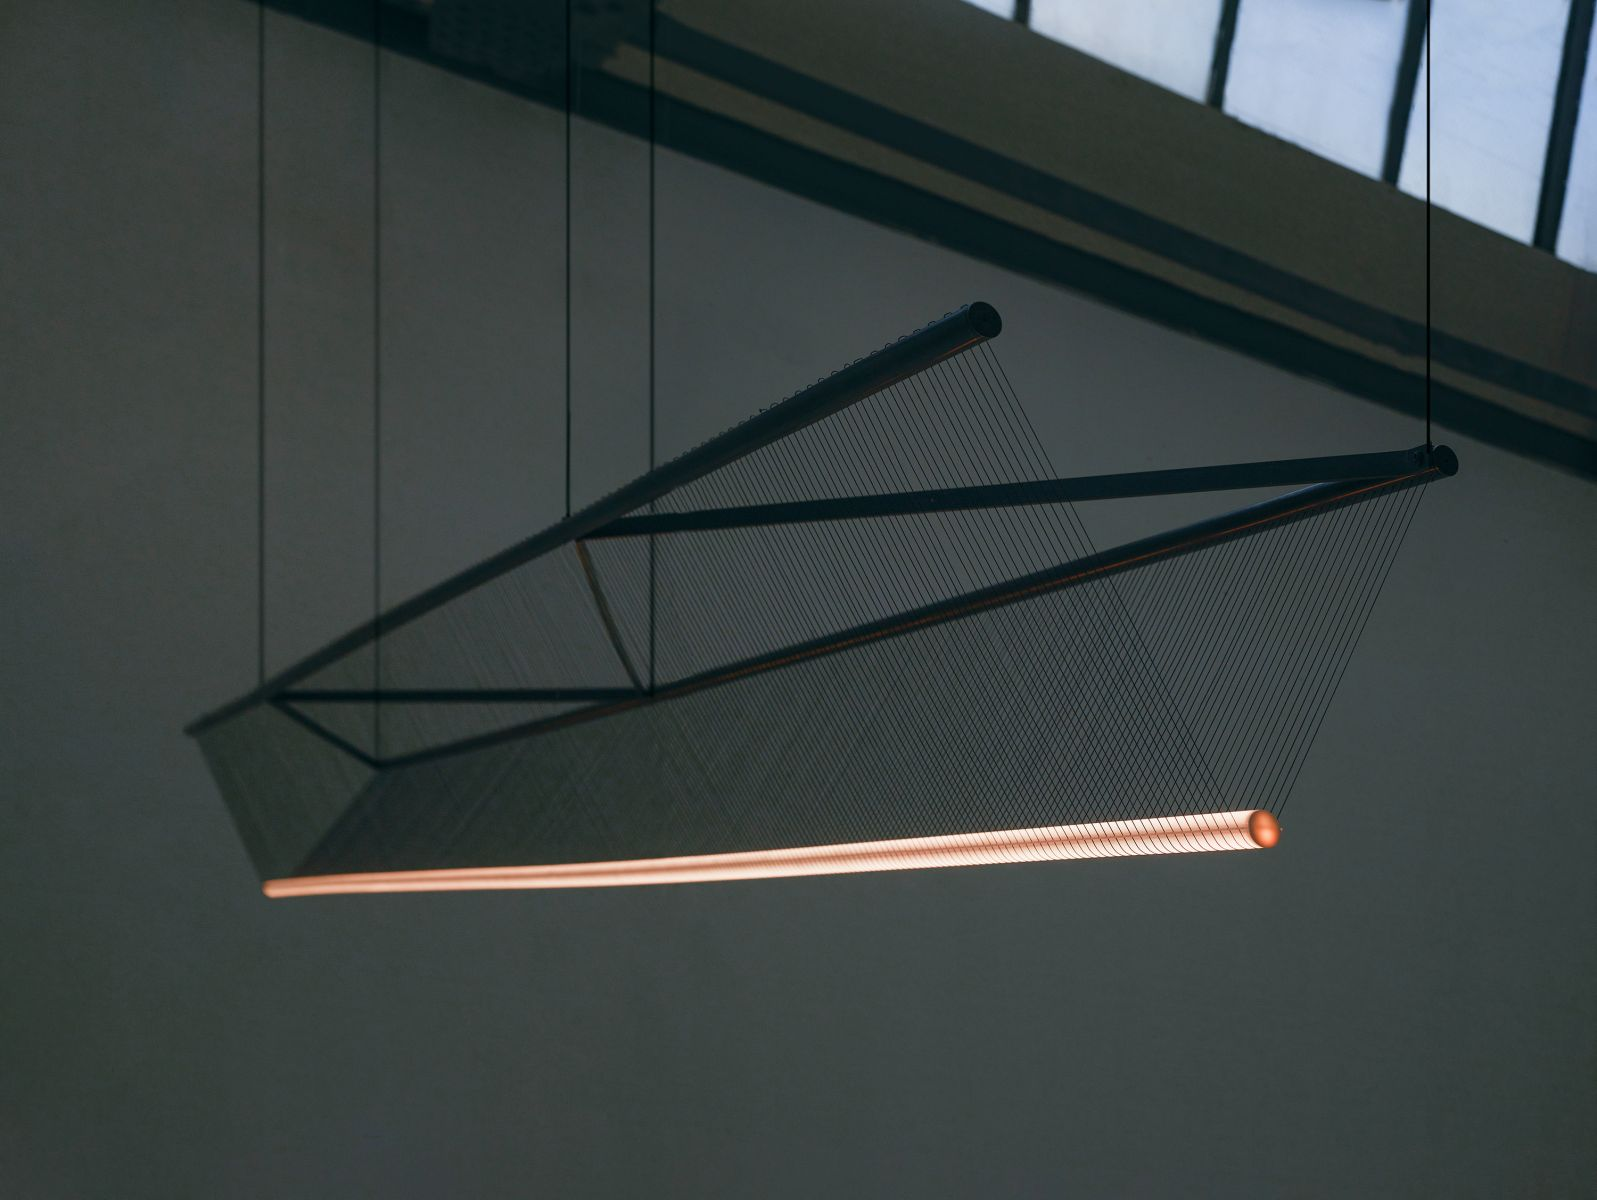 Spun Beam by Umut Yamac. Patinated brass, thread, stainless steel 3